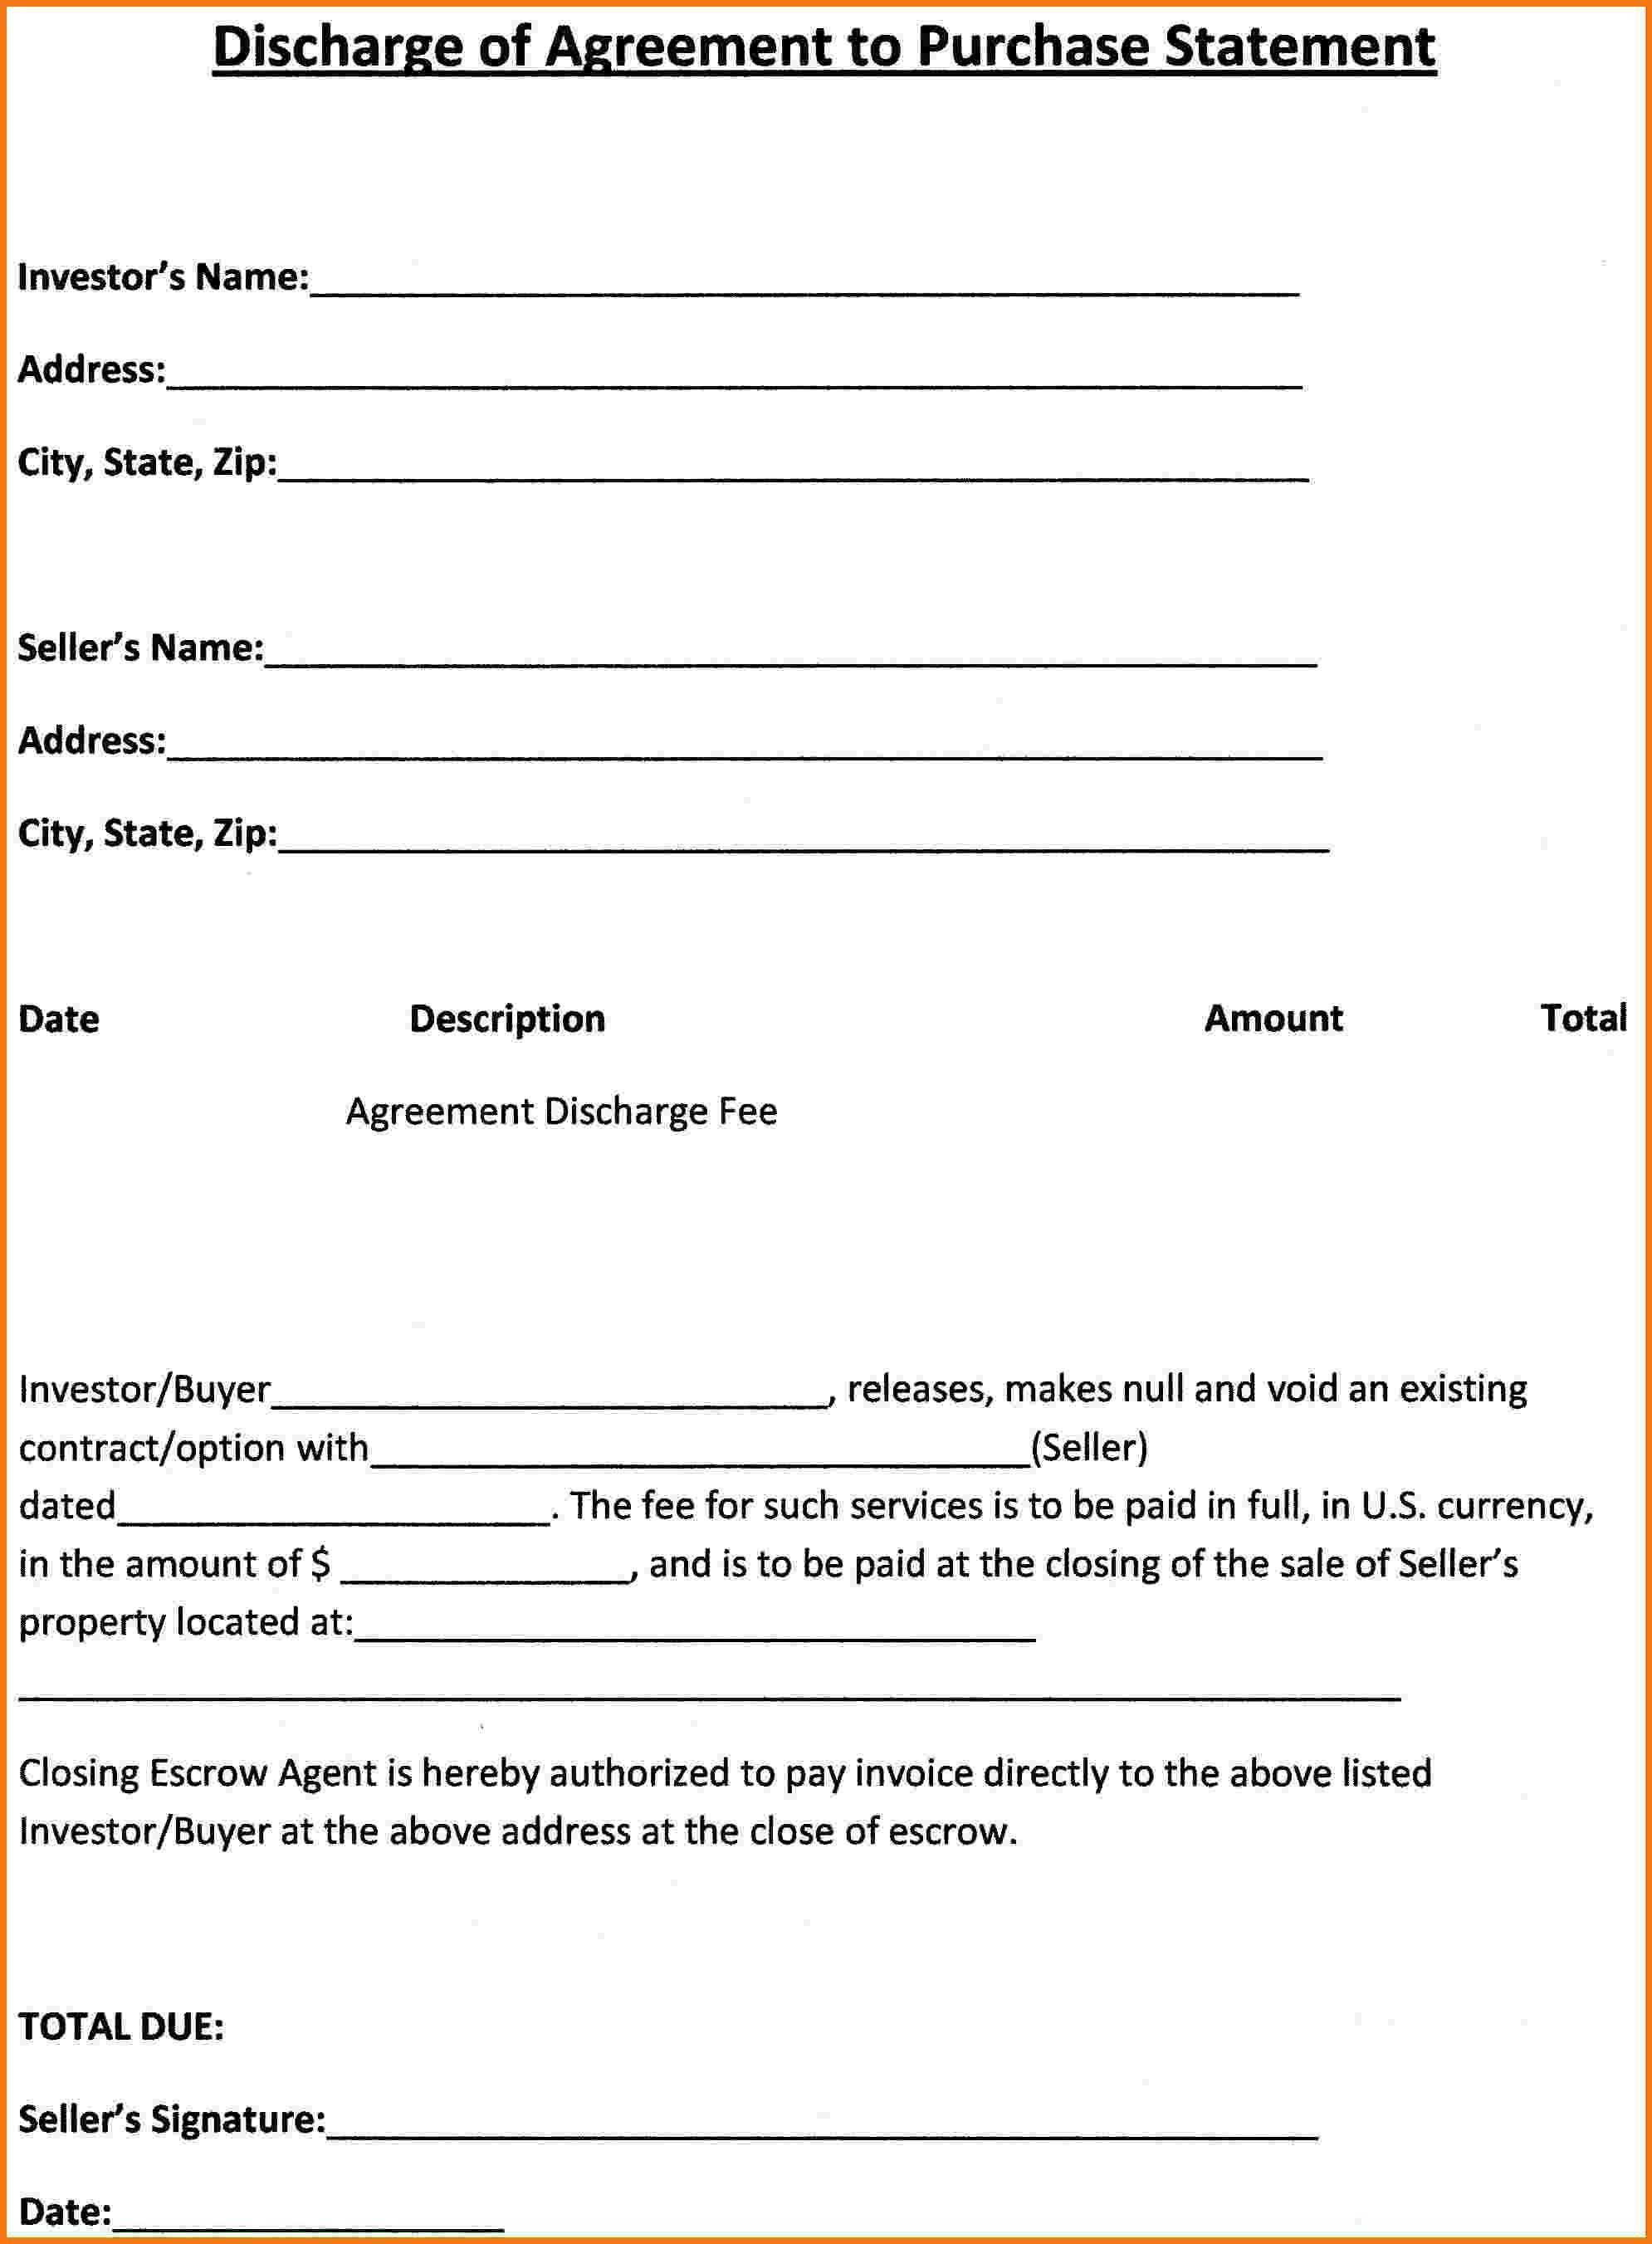 Free Blank Purchase Agreement Form 39703 Simple Purchase Agreement - Free Printable Purchase Agreement Forms